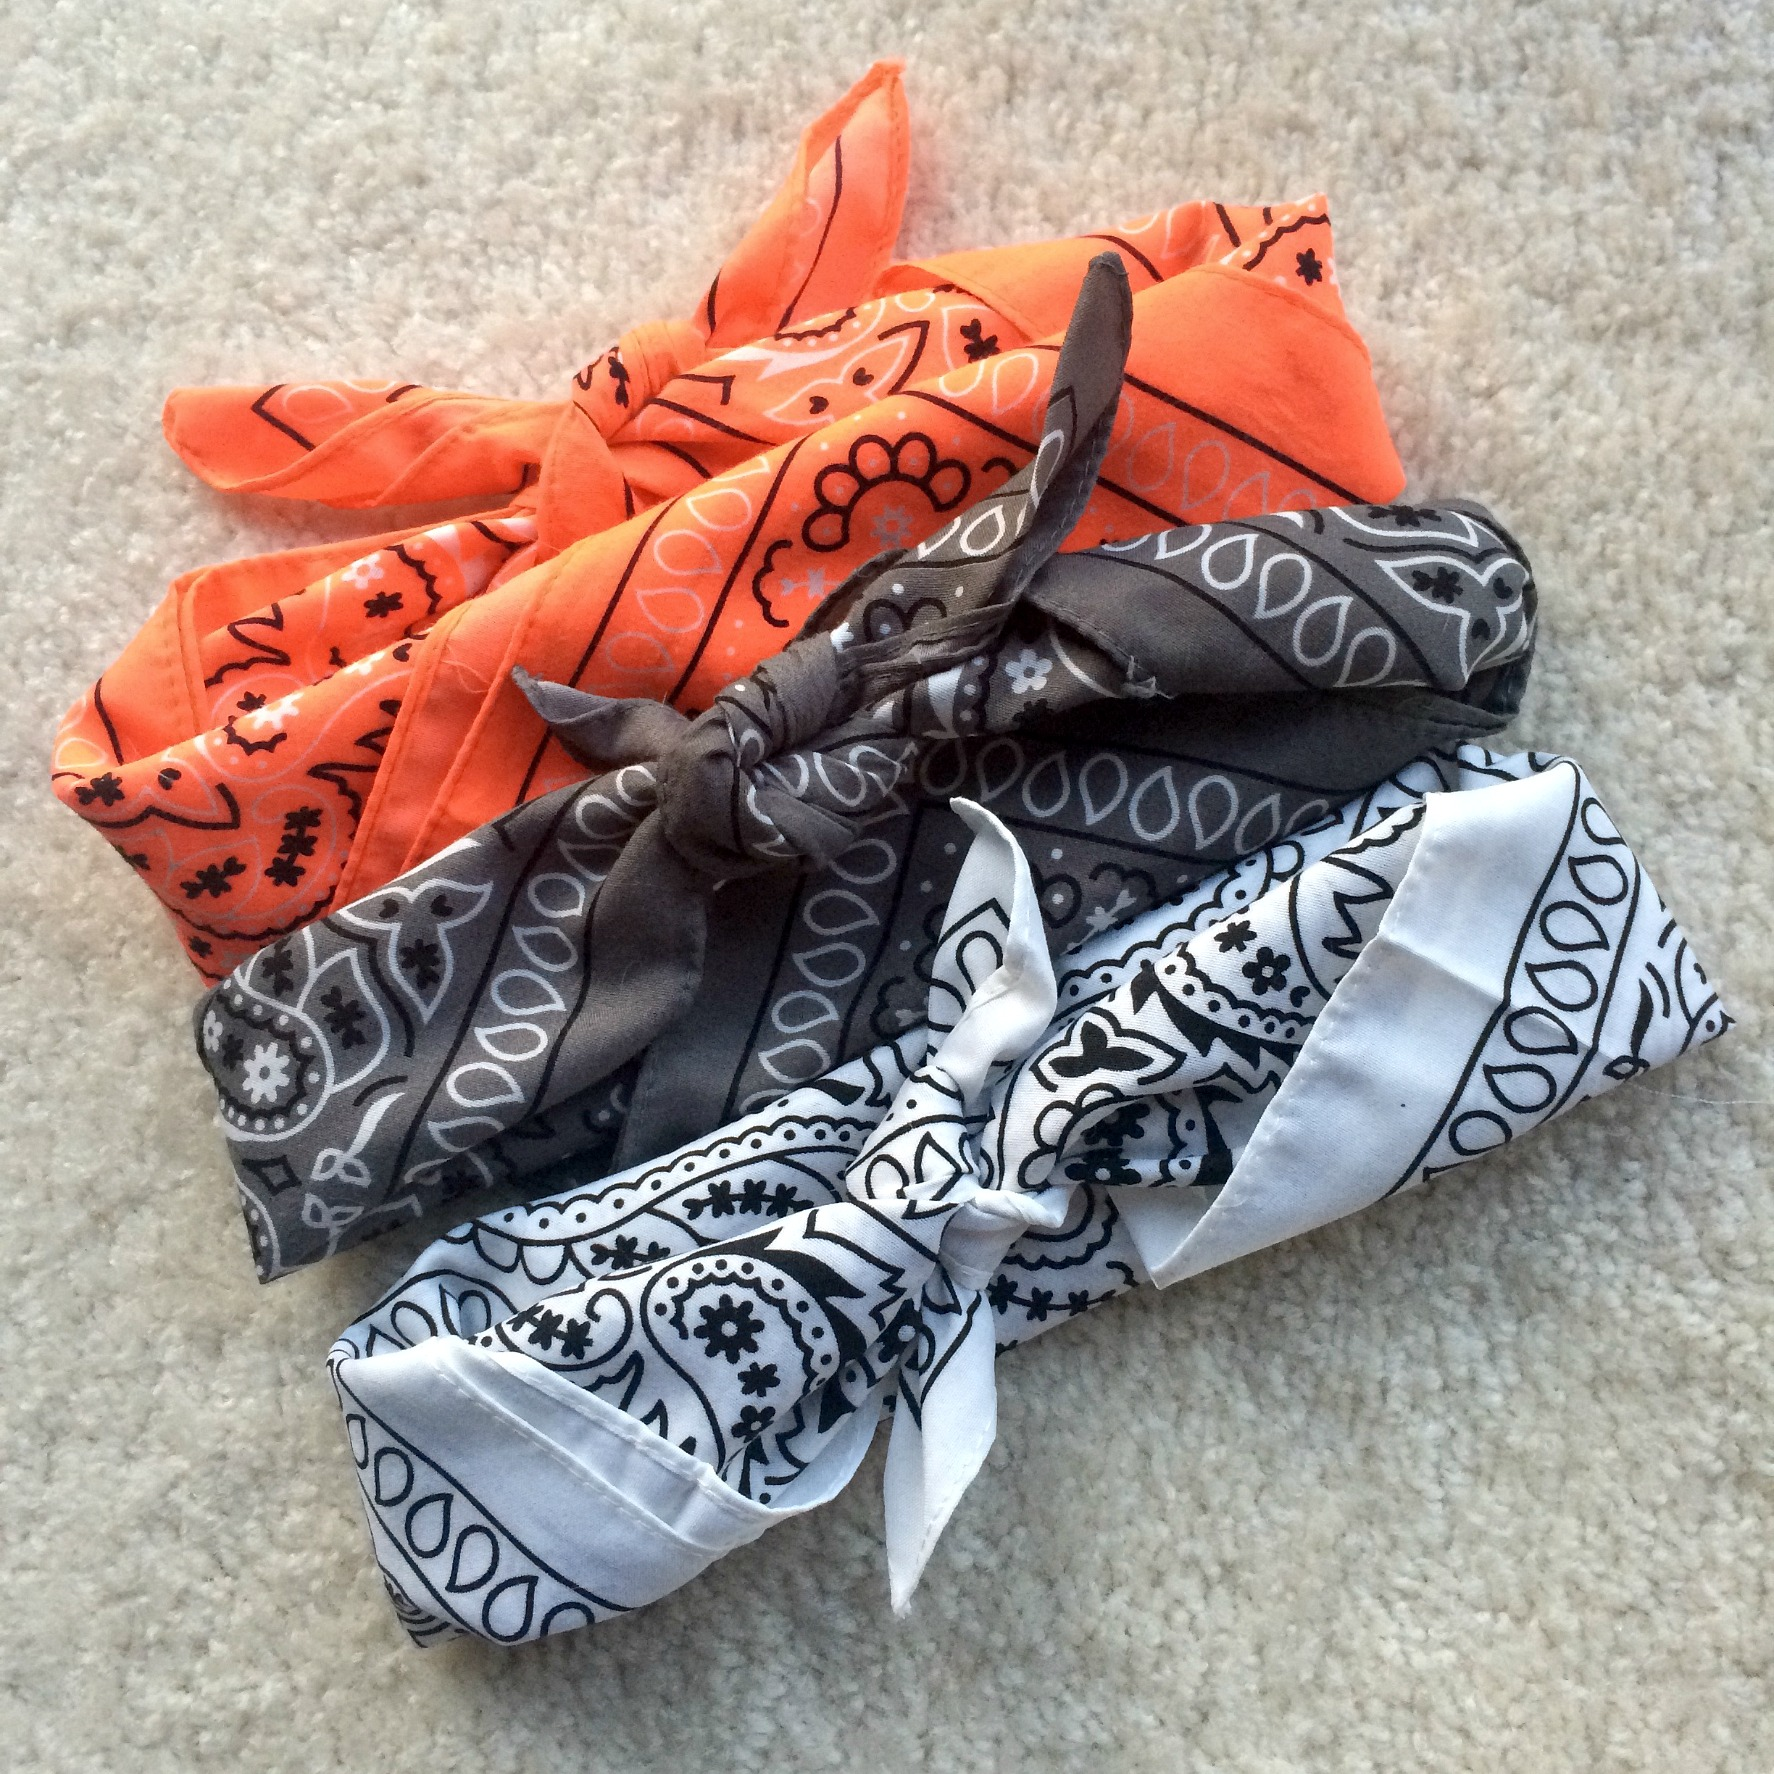 bandanas as headbands